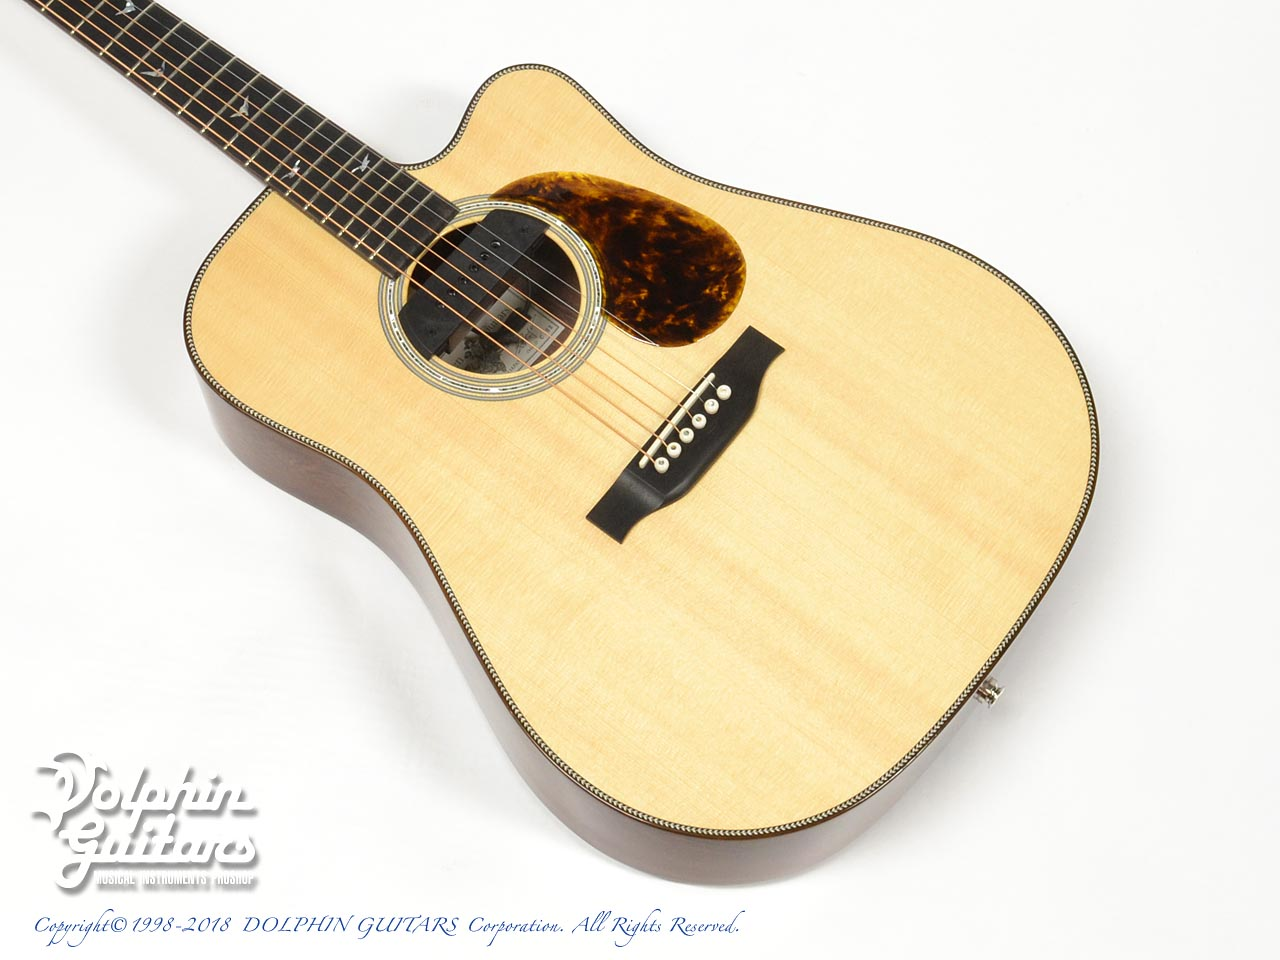 Greven Guitars Japan: Oshio-DC HR (Honduras Rosewood) w/RAPTOR SYSTEM by TRIAL  (1)